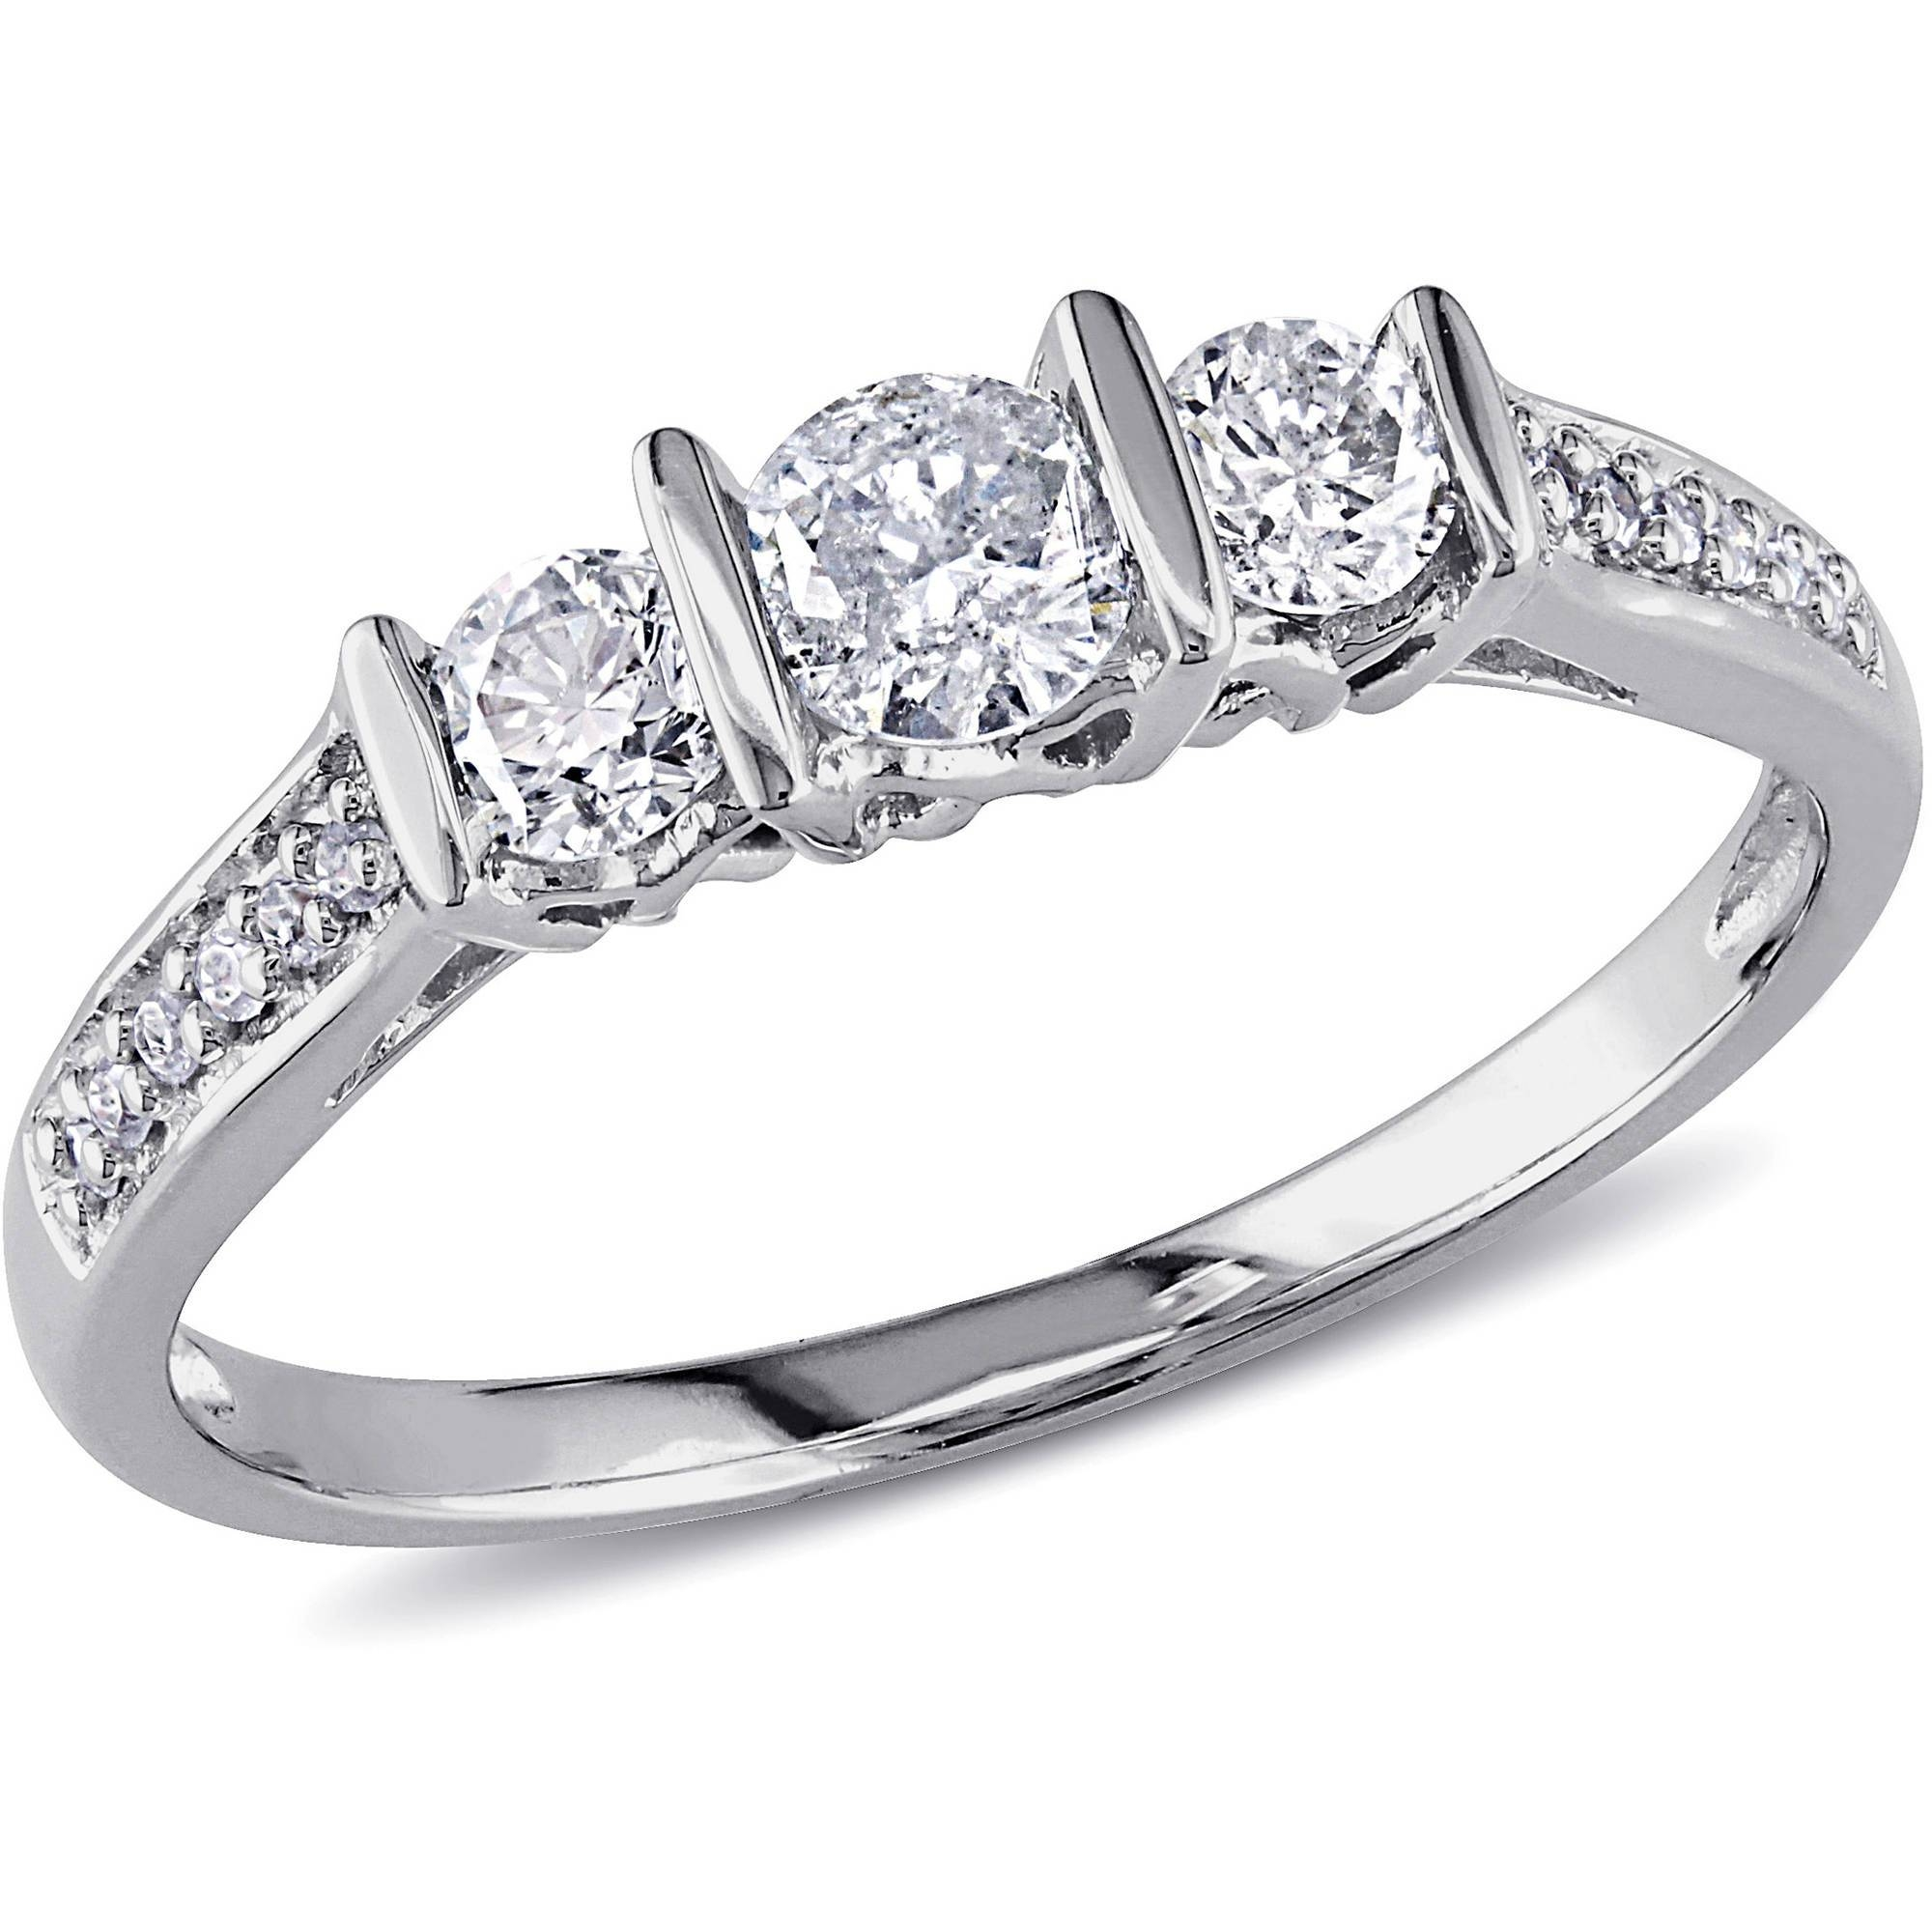 Keepsake Diamond Rings In Walmart Engagement Rings For Men (View 8 of 15)